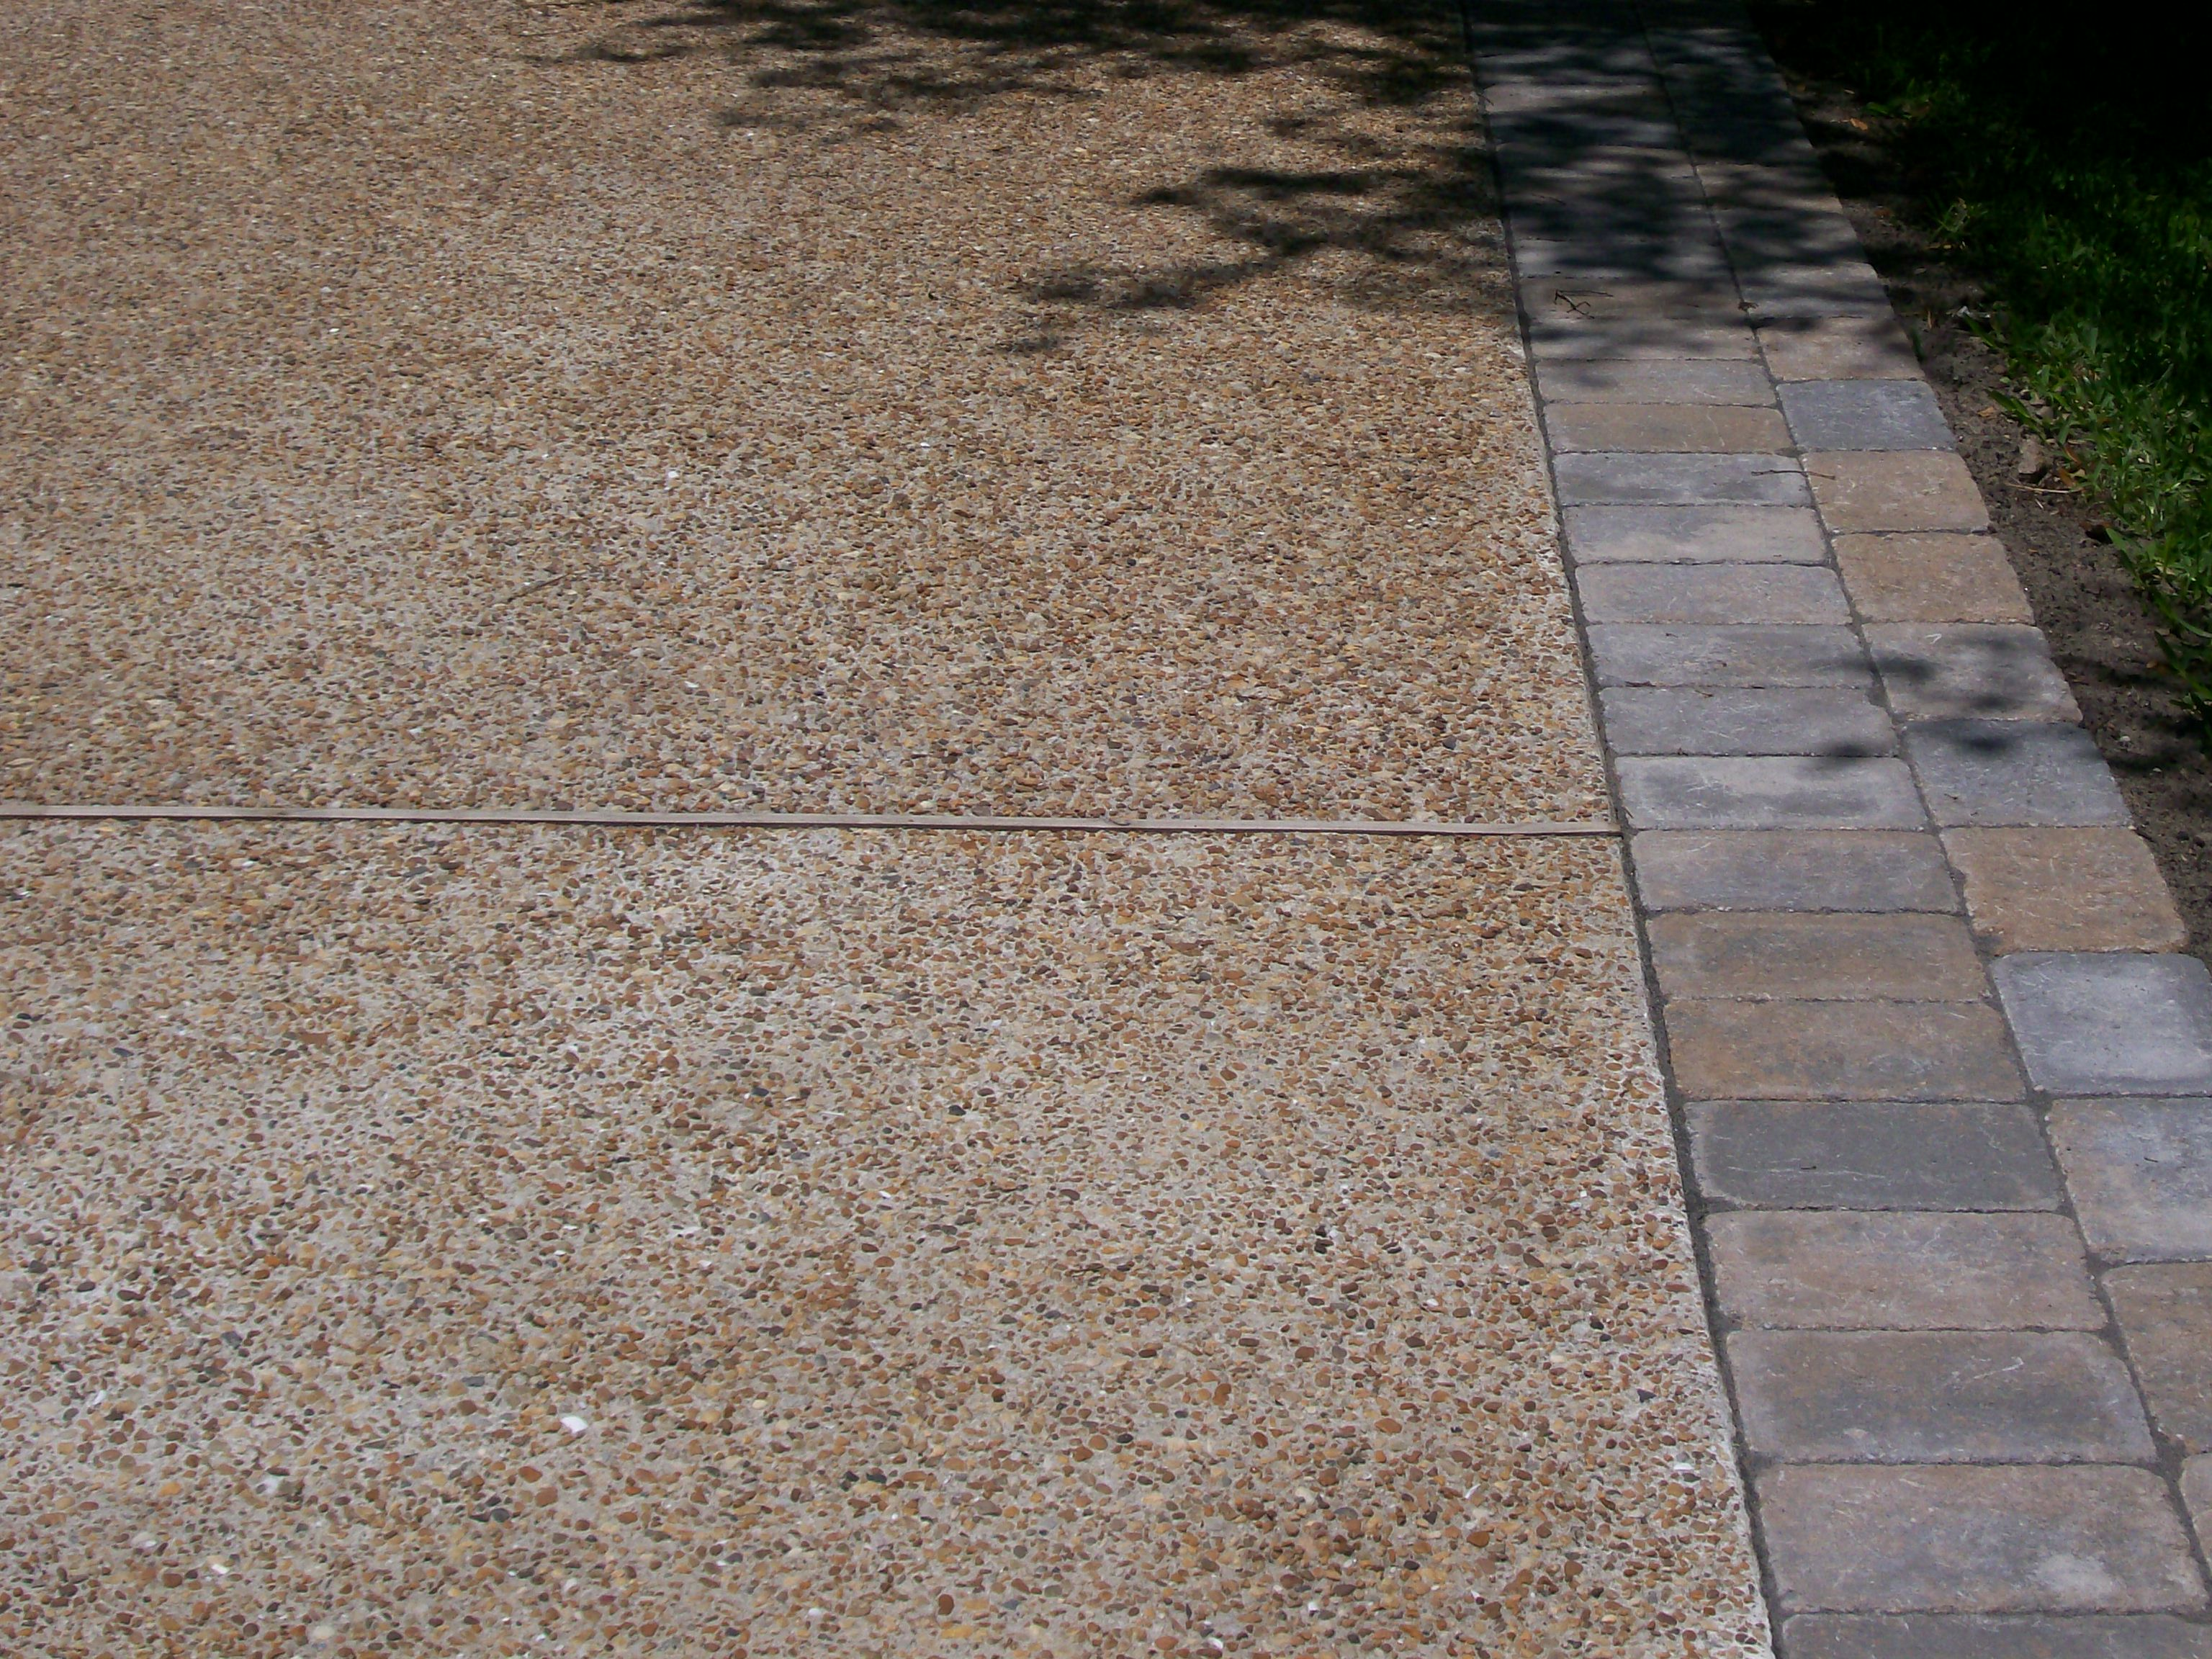 Concrete Patio Resurfacing Ideas How To Resurface Pool